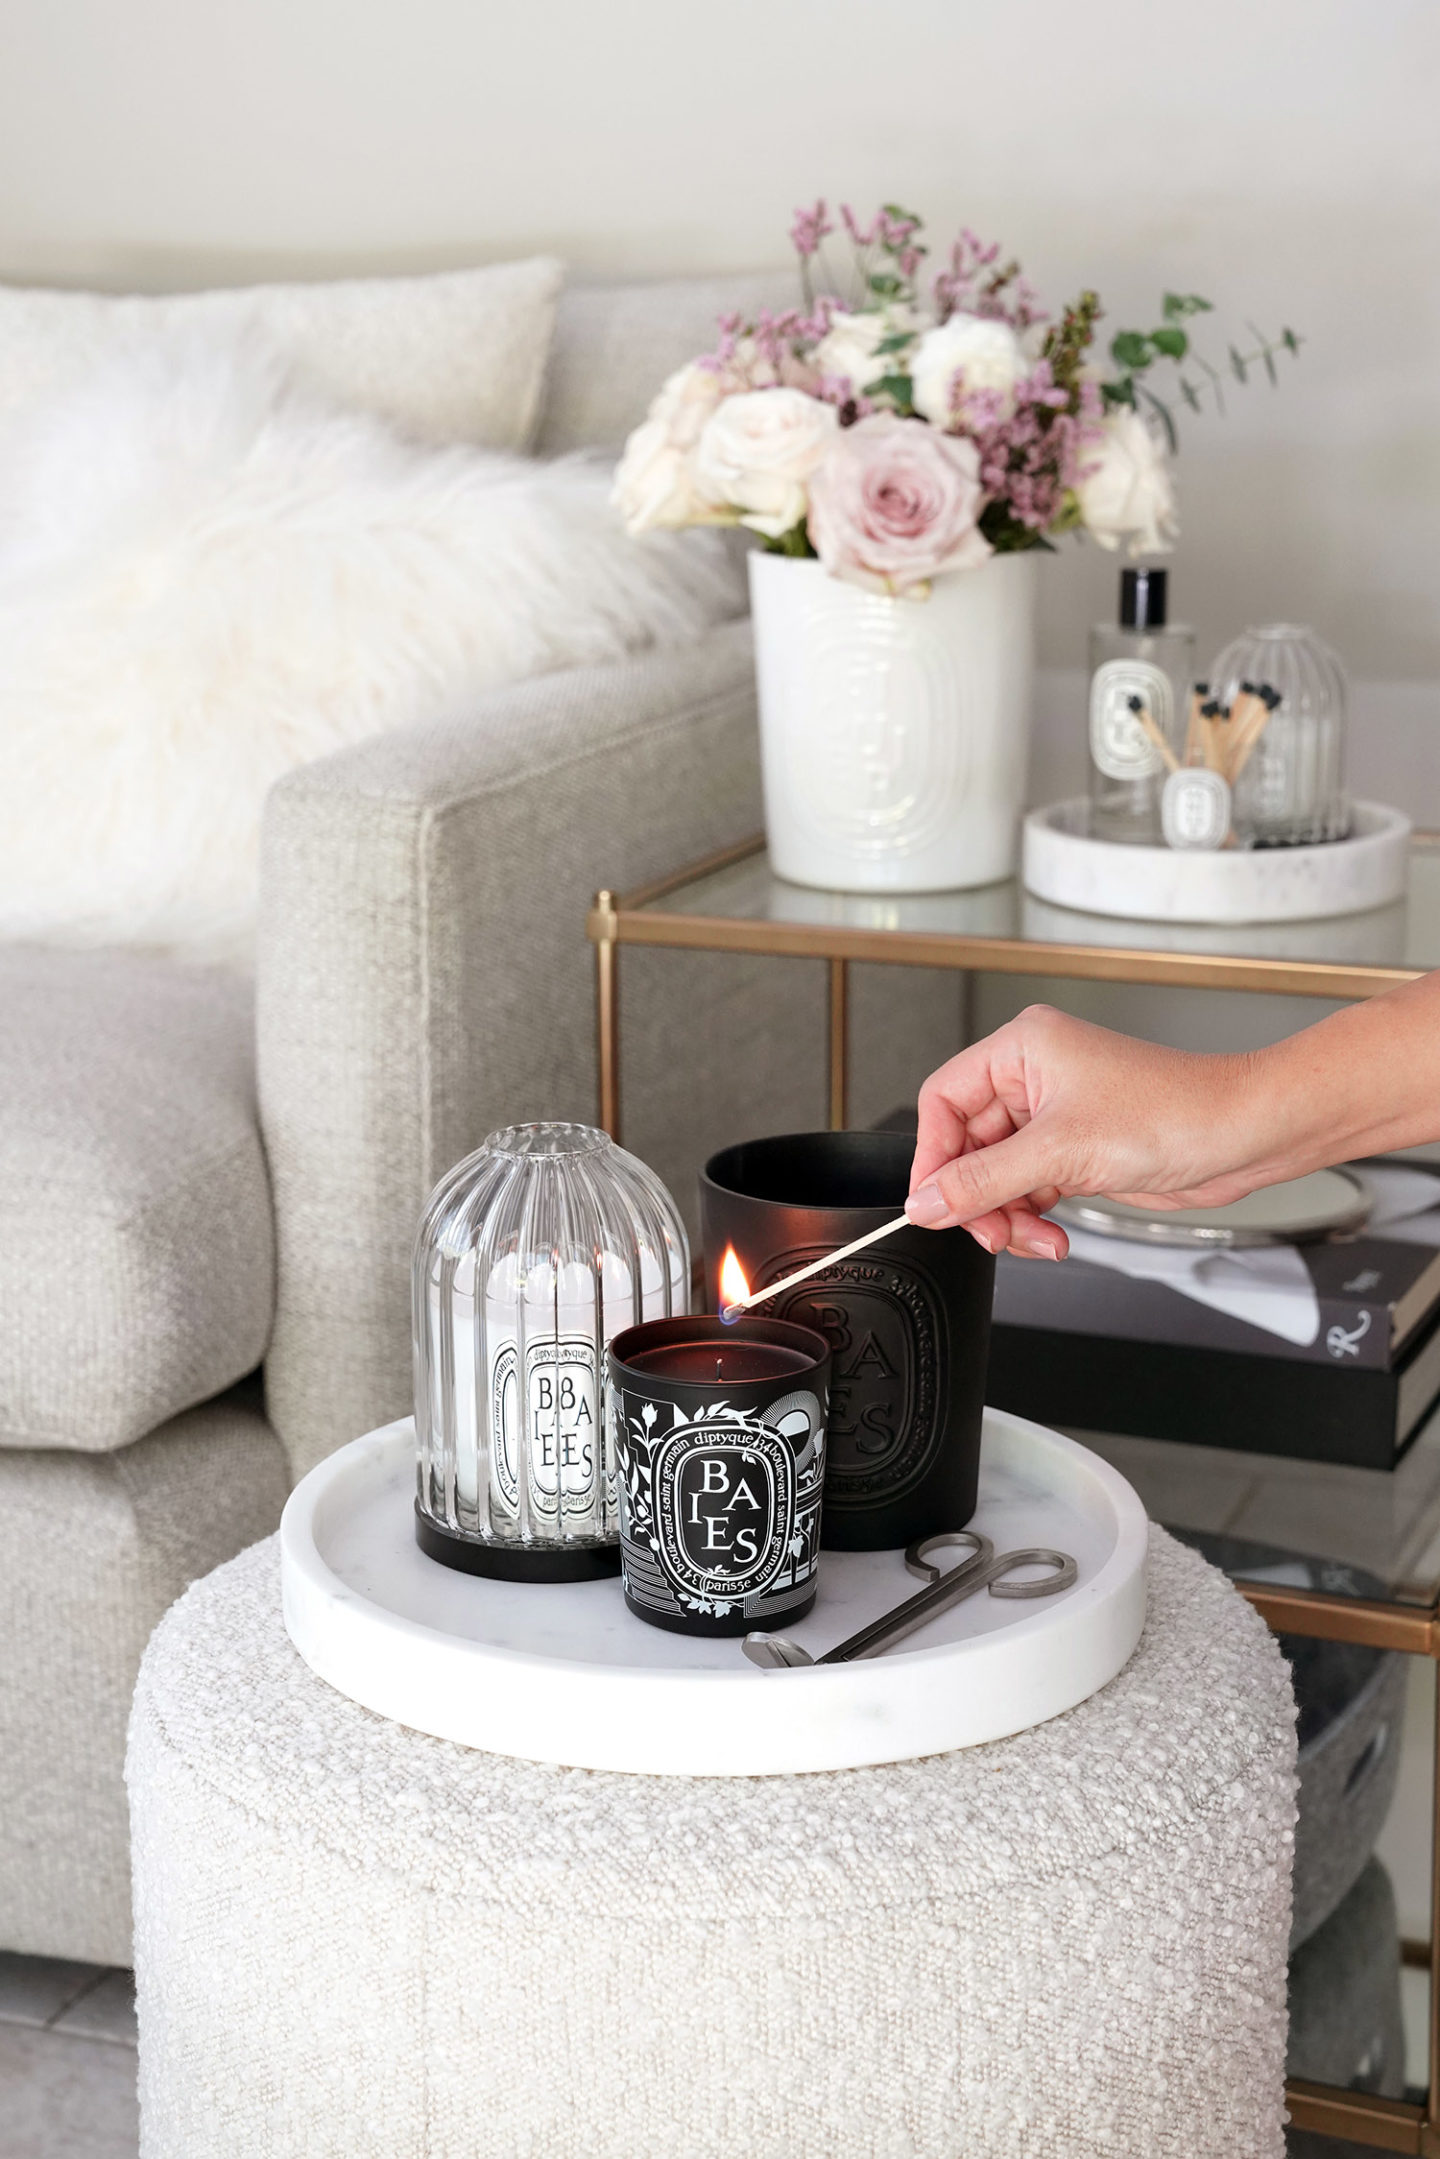 Diptyque Black Friday Baies Candle 2020 | The Beauty Lookbook